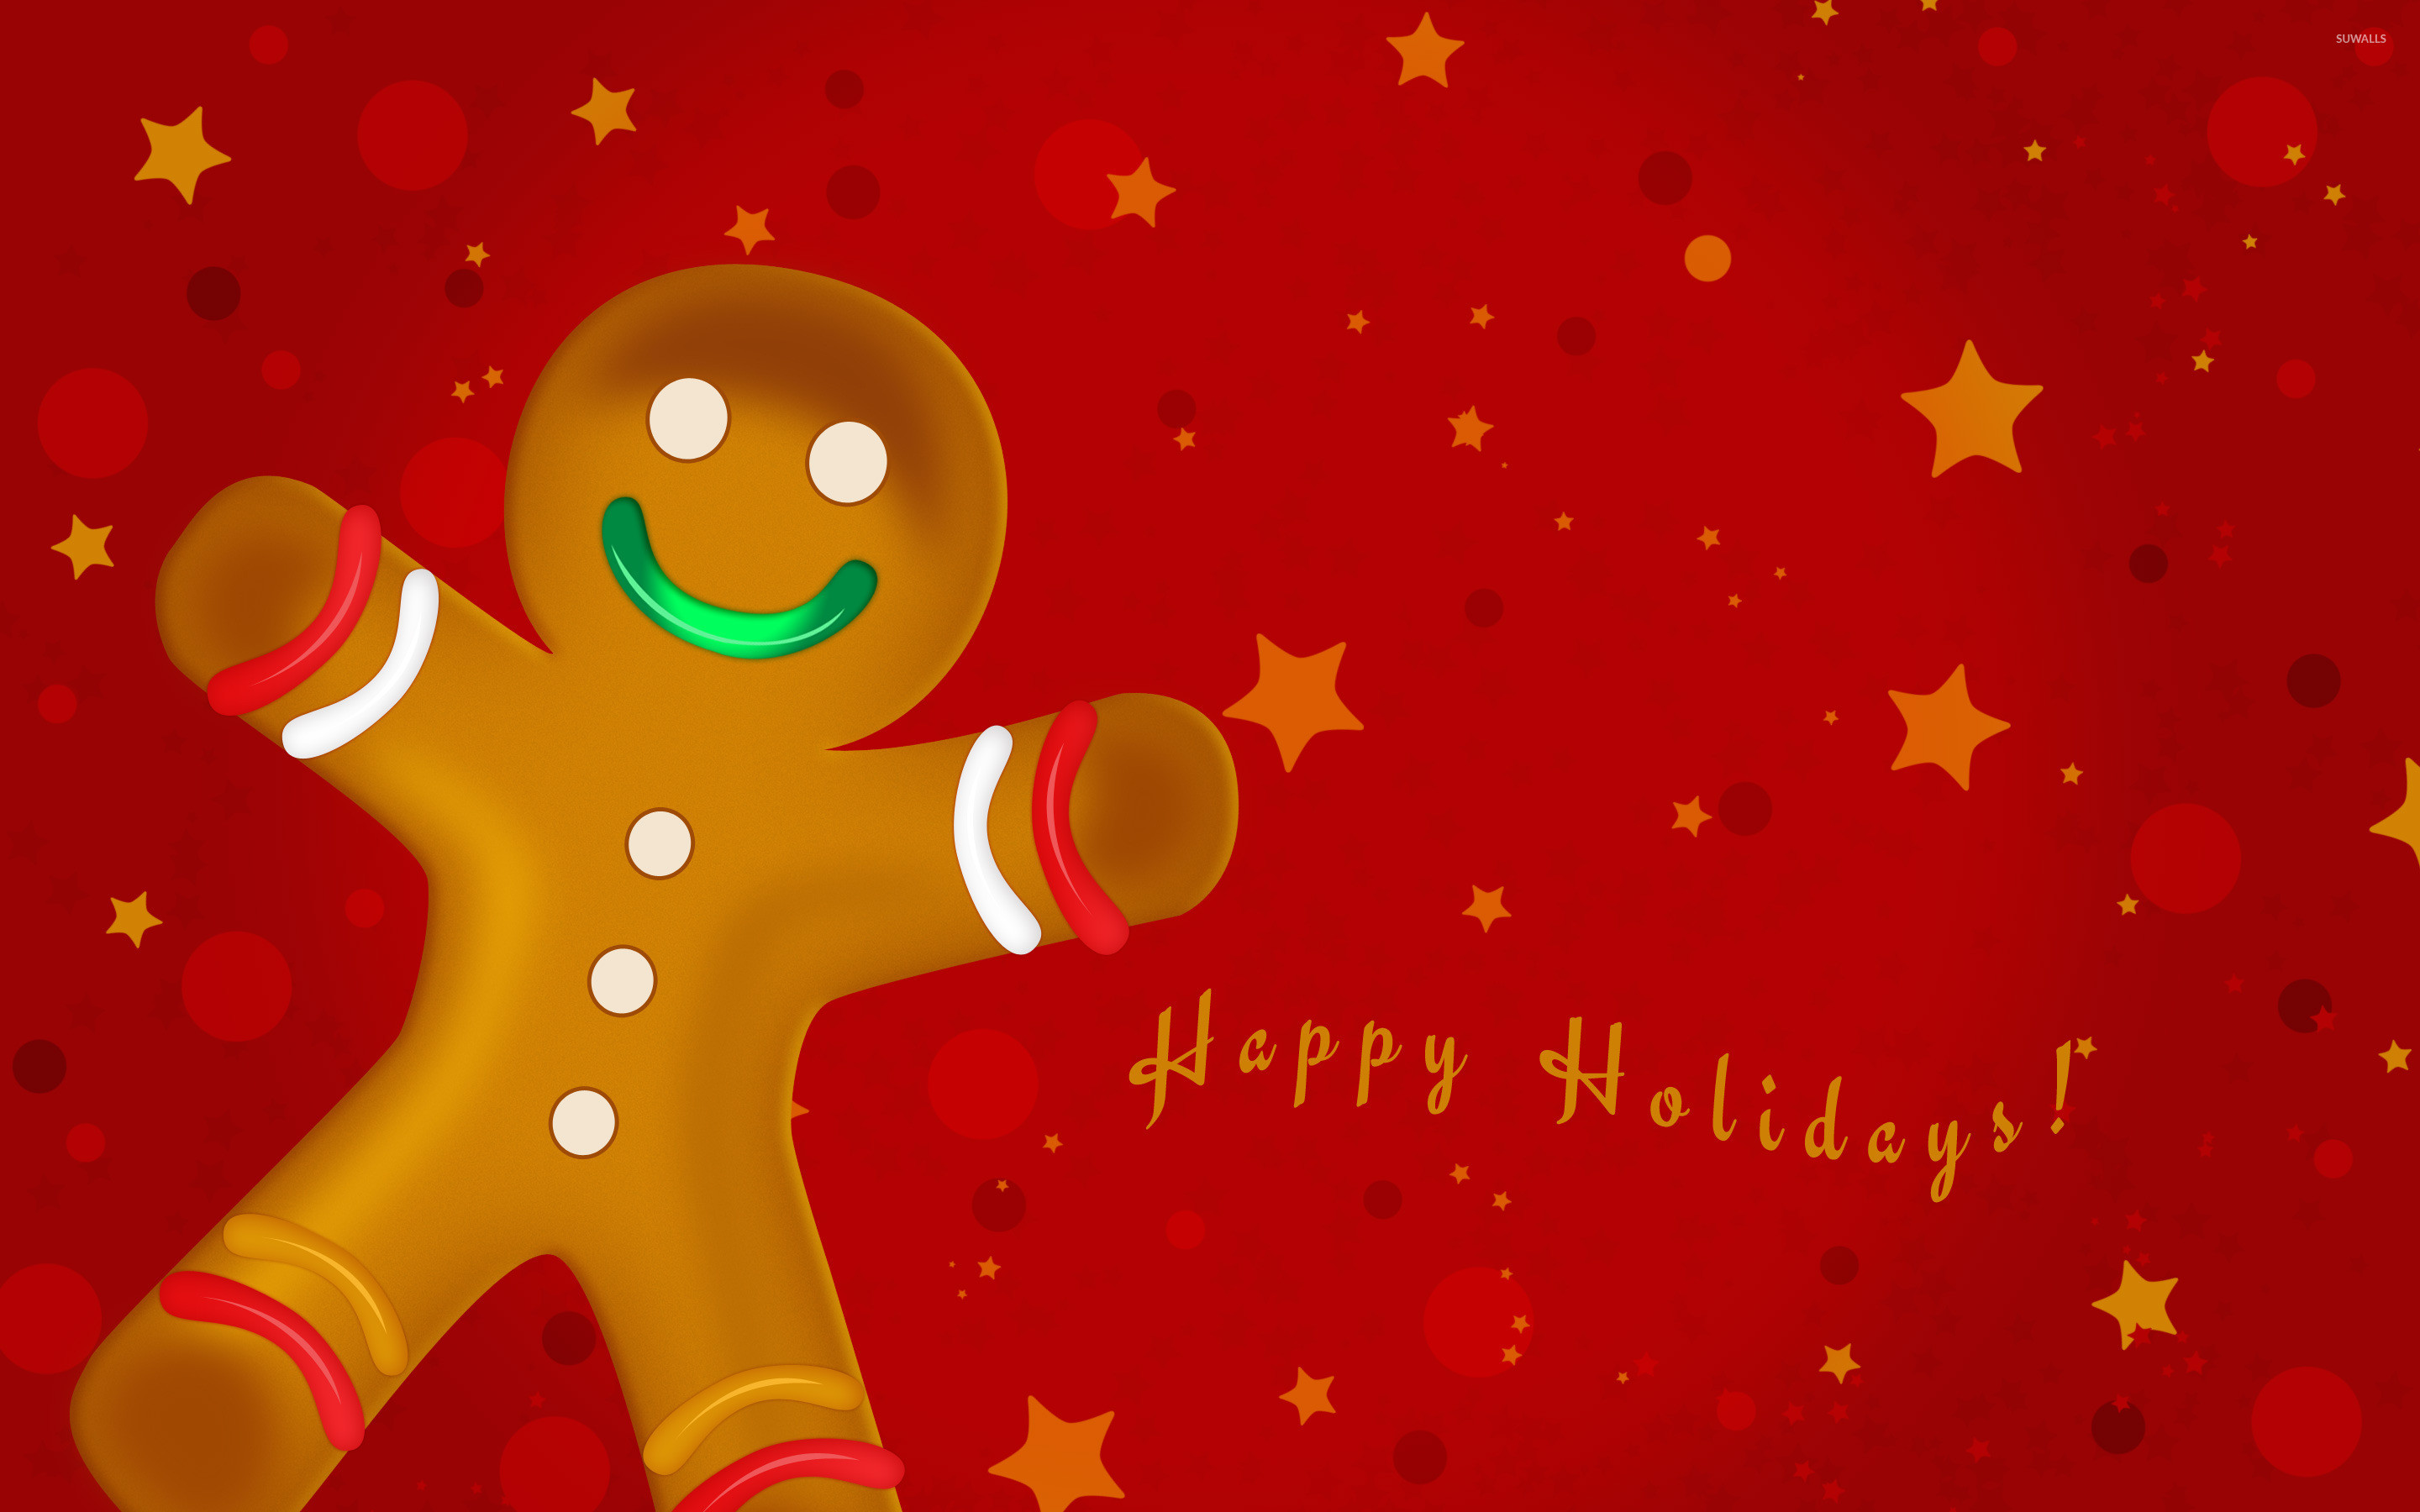 happy holiday wallpaper  74  images